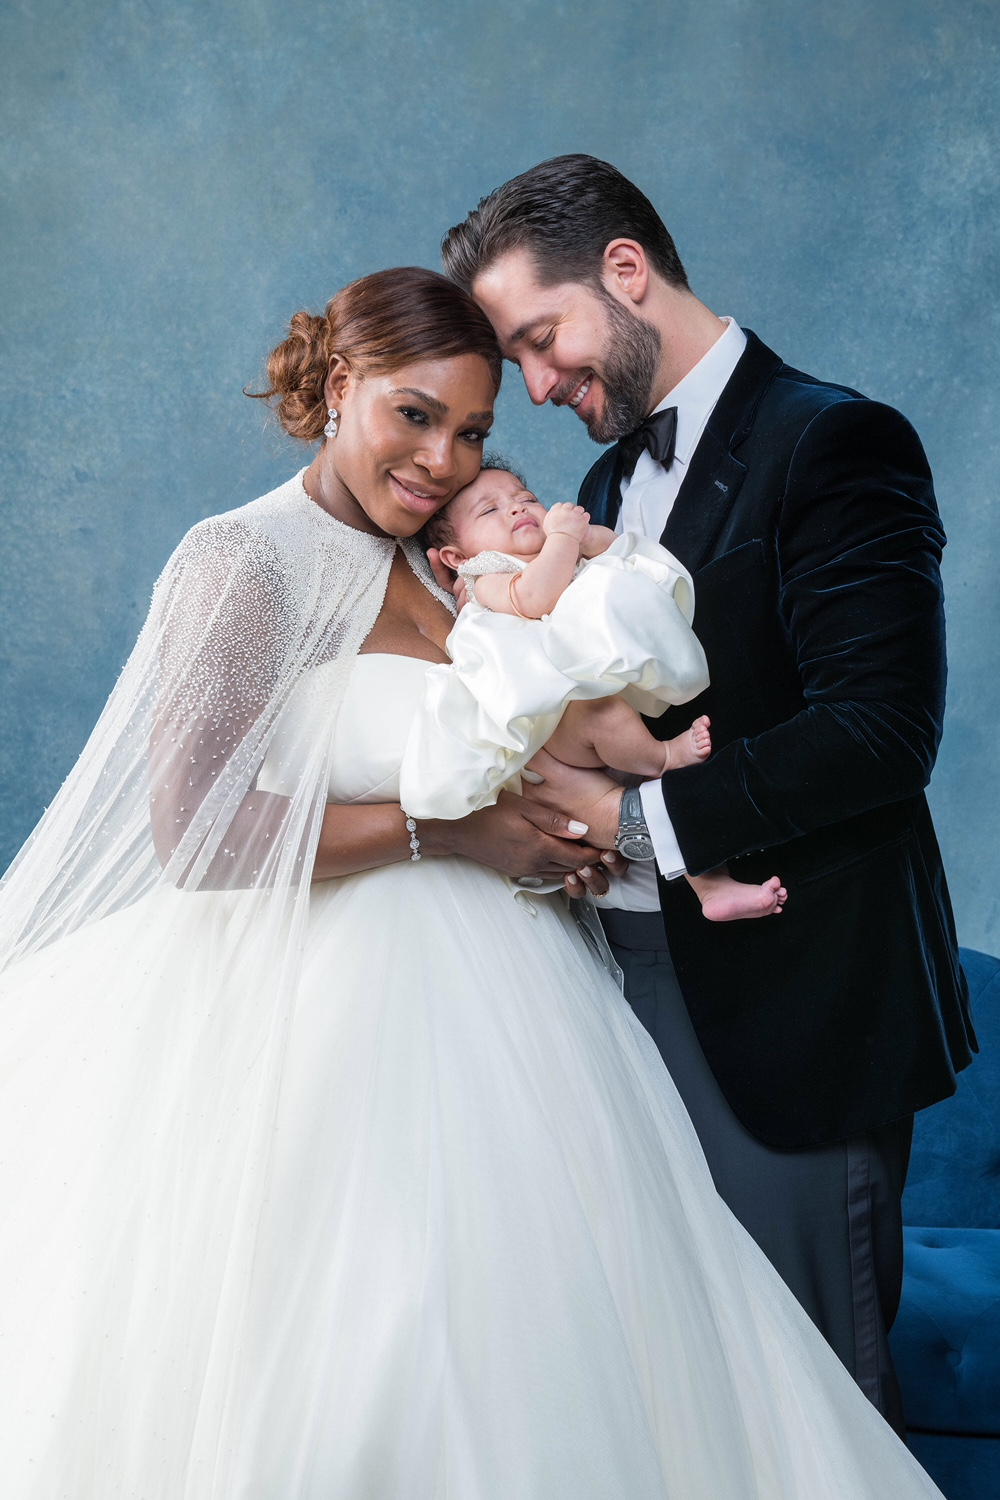 Serena Williams and Alexis Ohanian Wedding Day